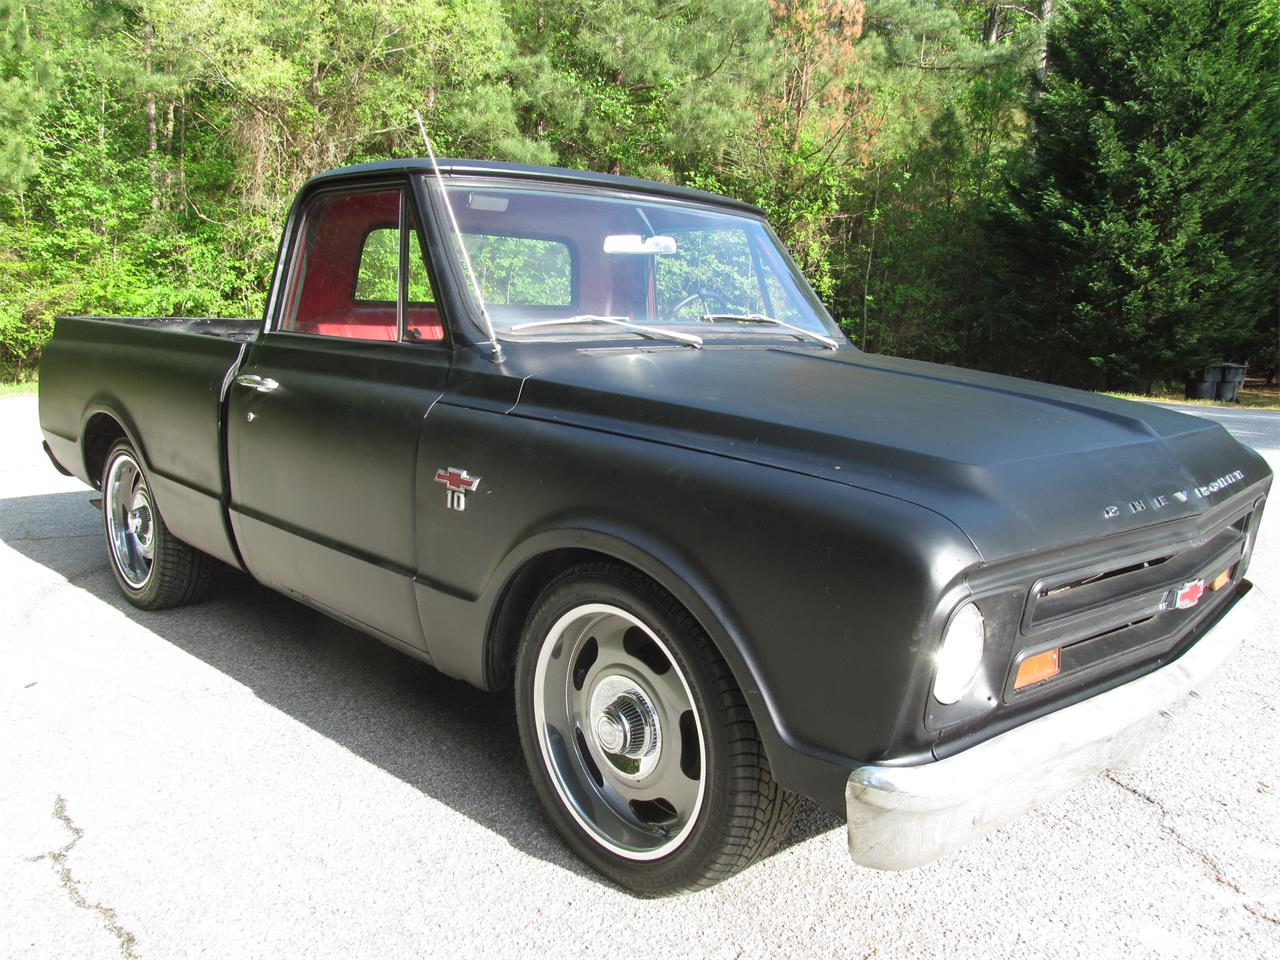 For Sale: 1967 Chevrolet C10 in Fayetteville, Georgia